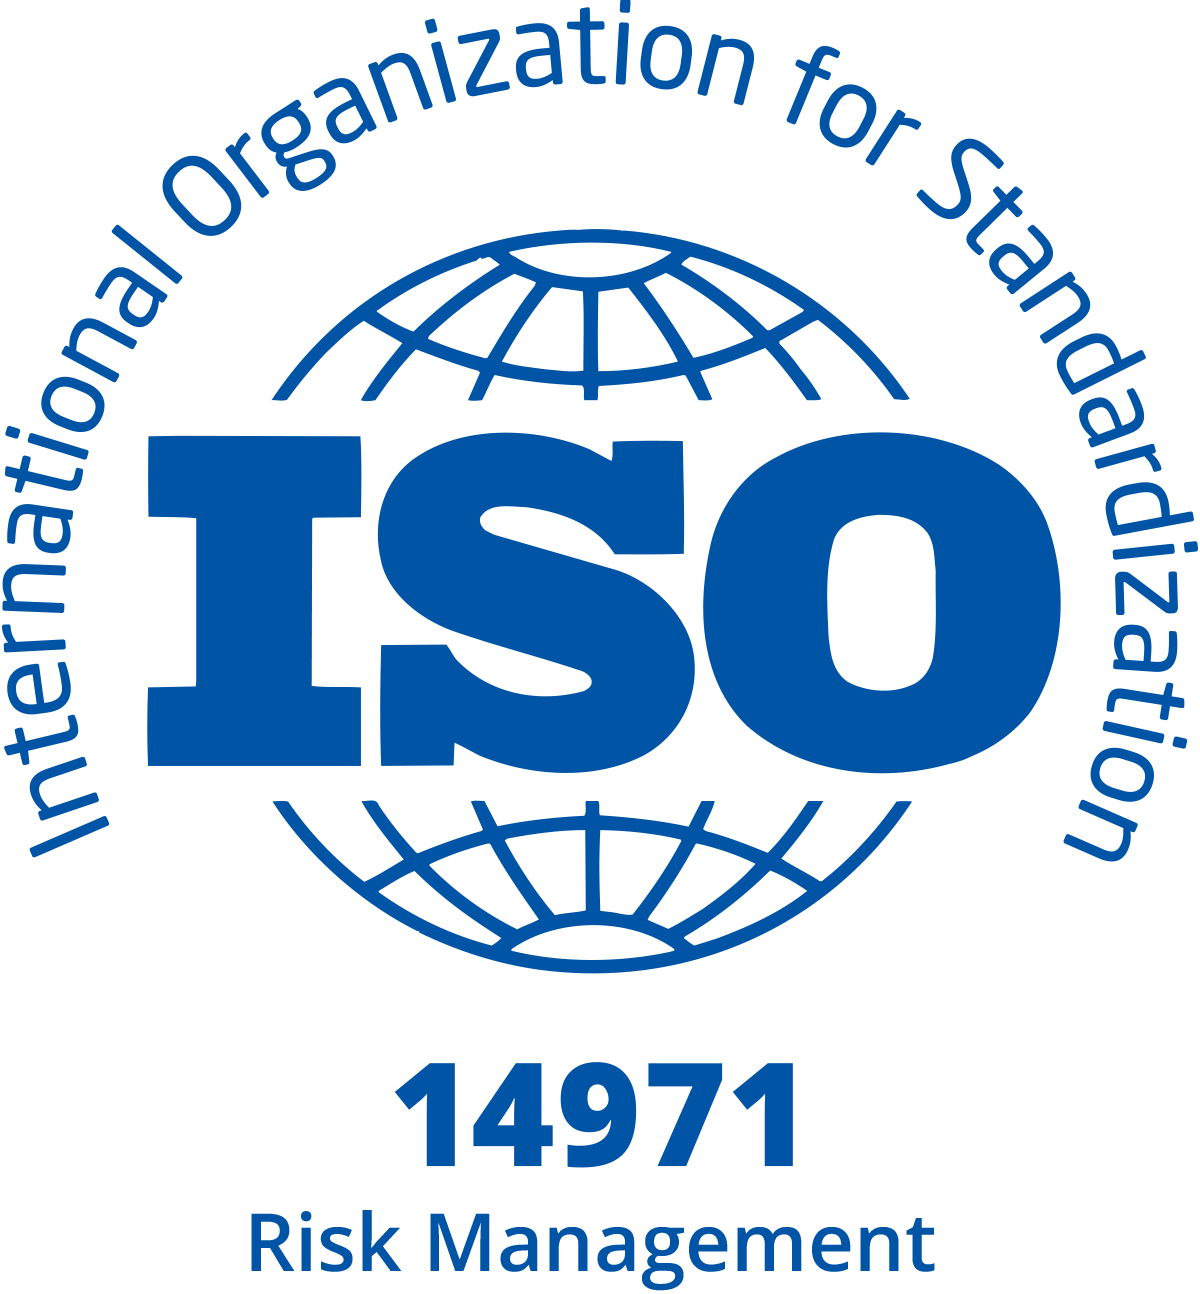 What is ISO 14971